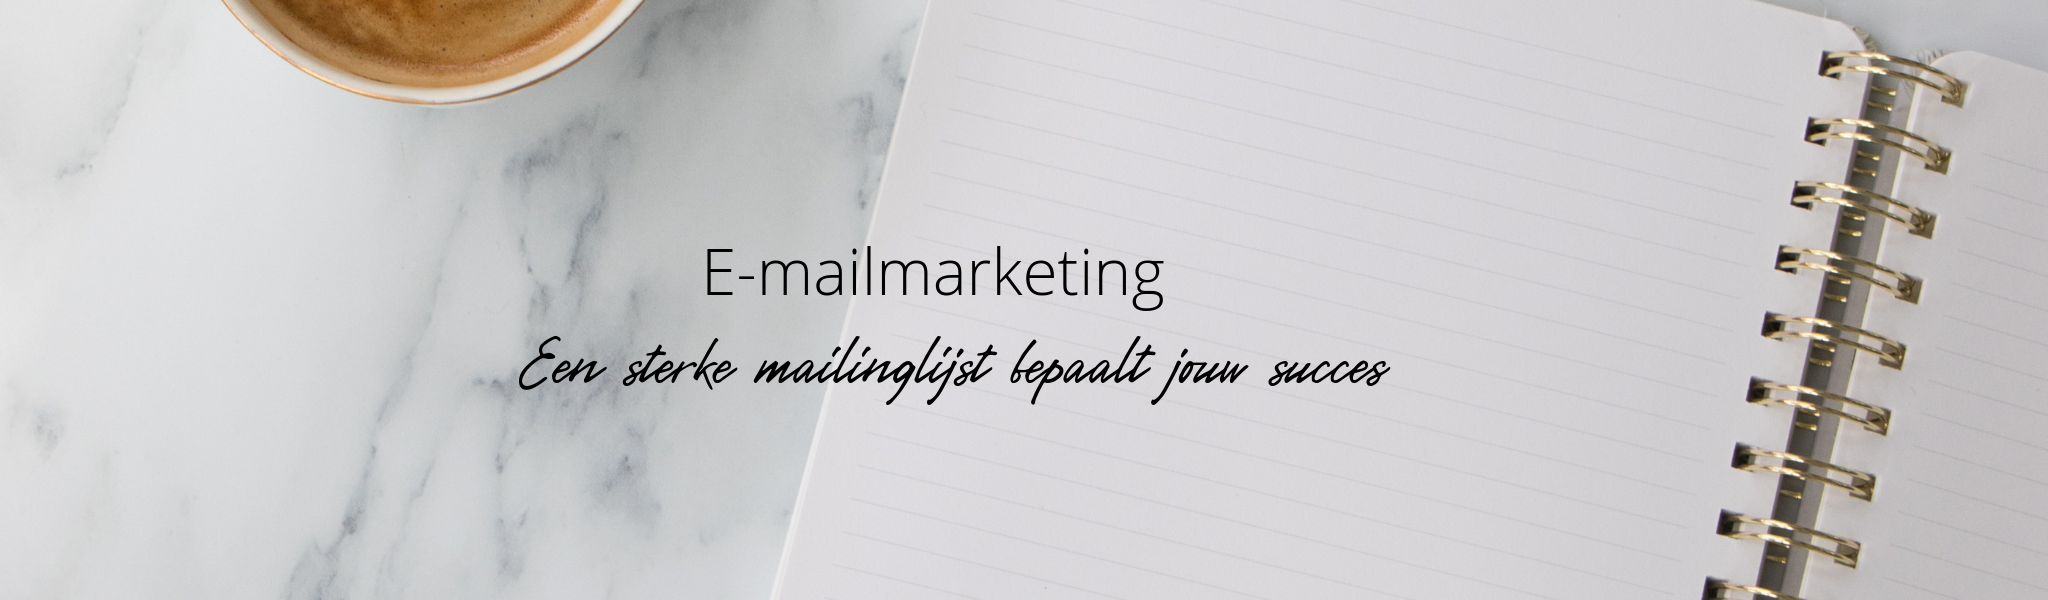 _E-mailmarketing_ funnel marketing voor ondernemers in belgië